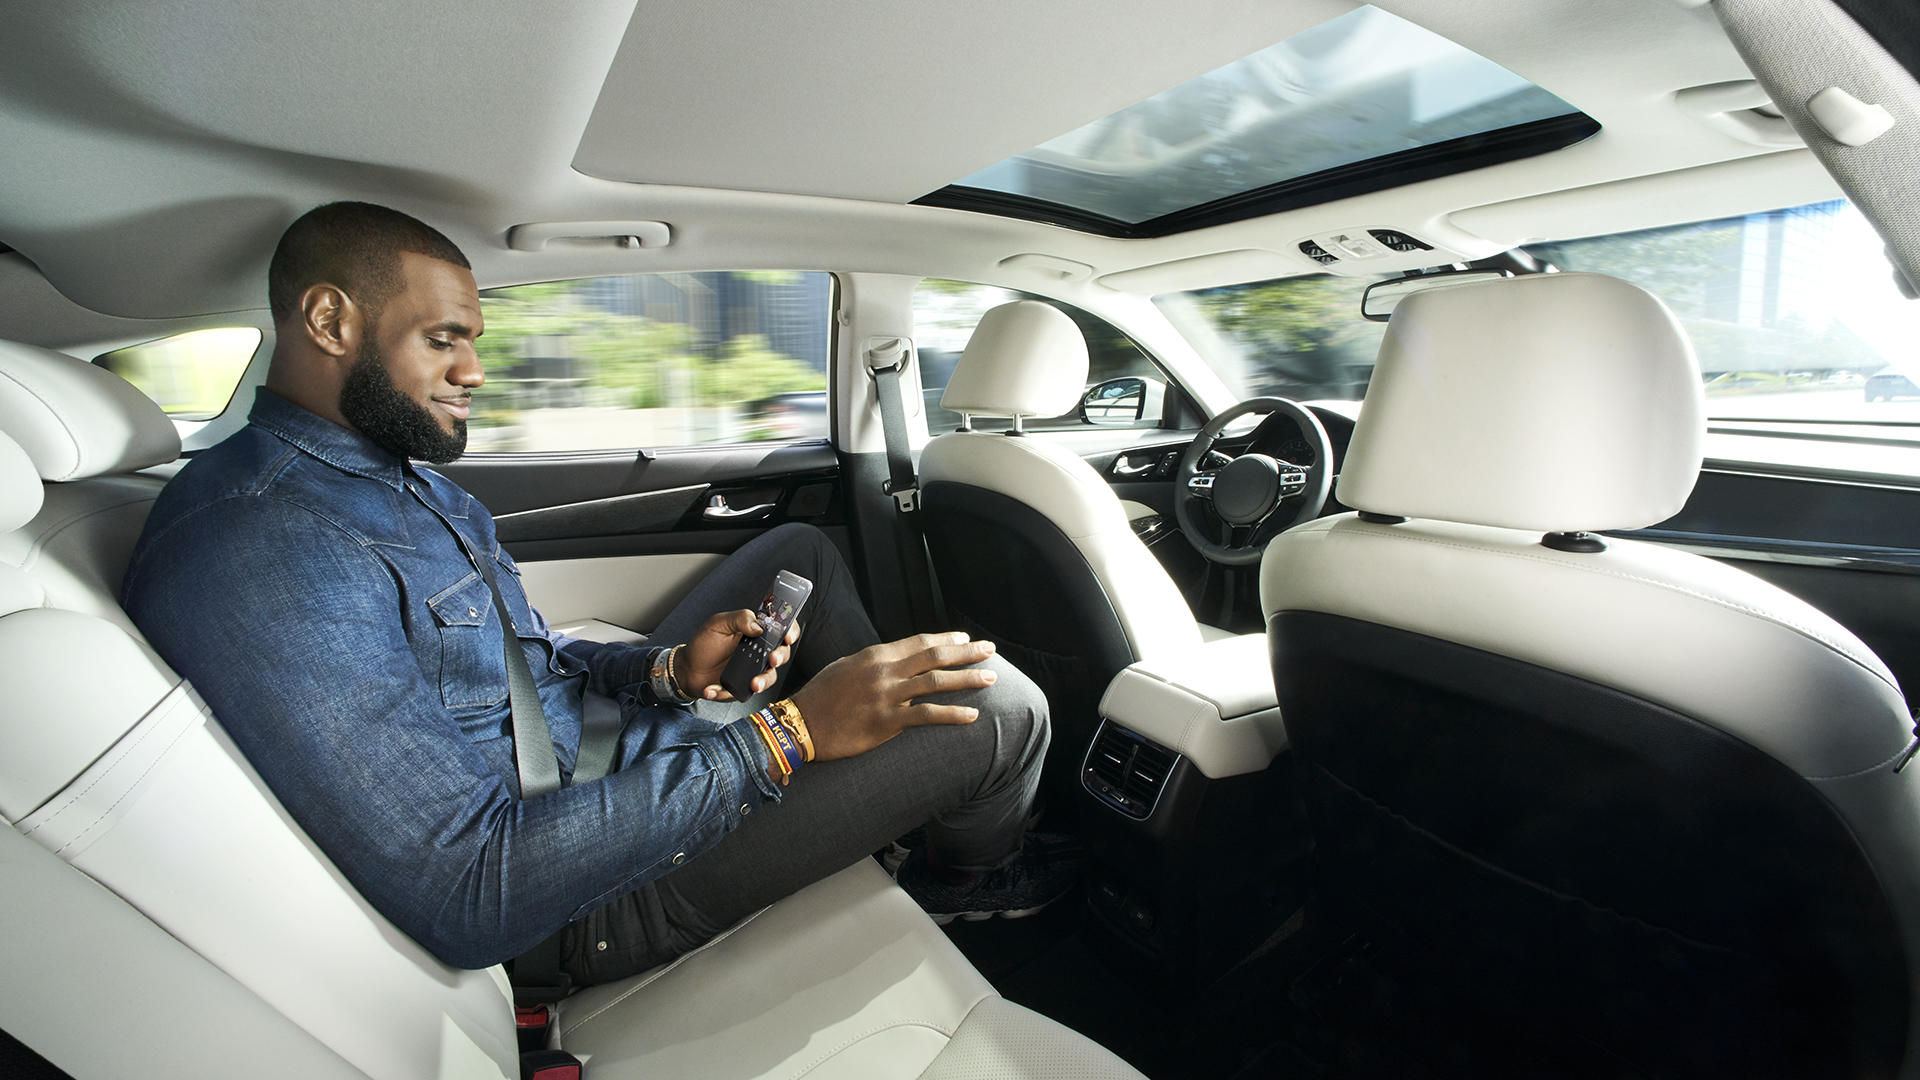 le basketteur lebron james fait la promo de la voiture autonome. Black Bedroom Furniture Sets. Home Design Ideas